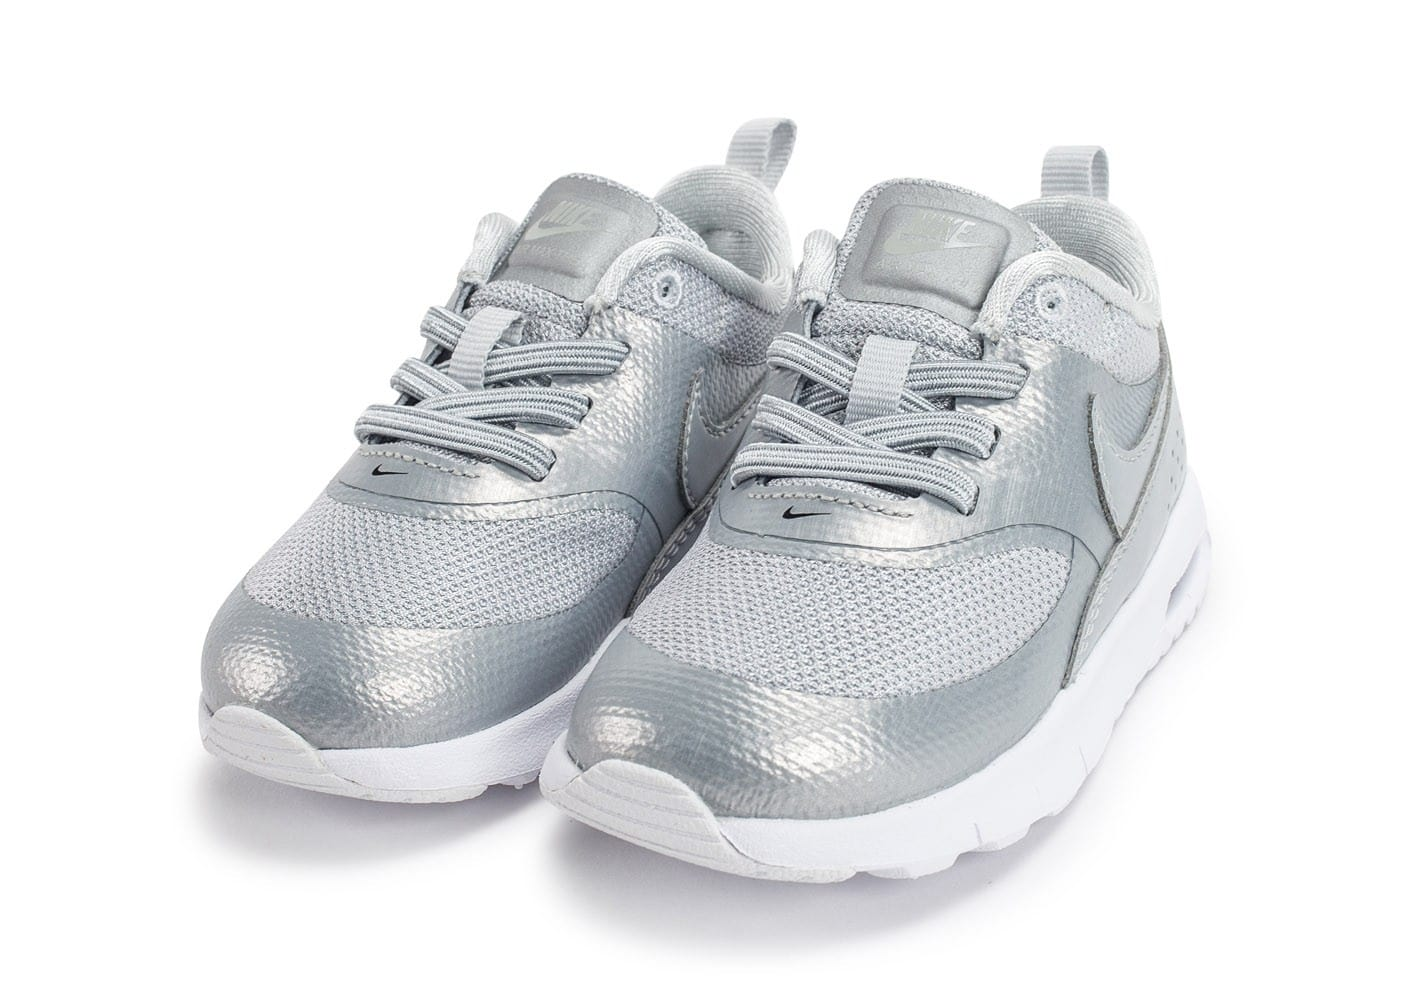 separation shoes 3a7bc a636e chaussures nike air max thea bebe argentee vue avant